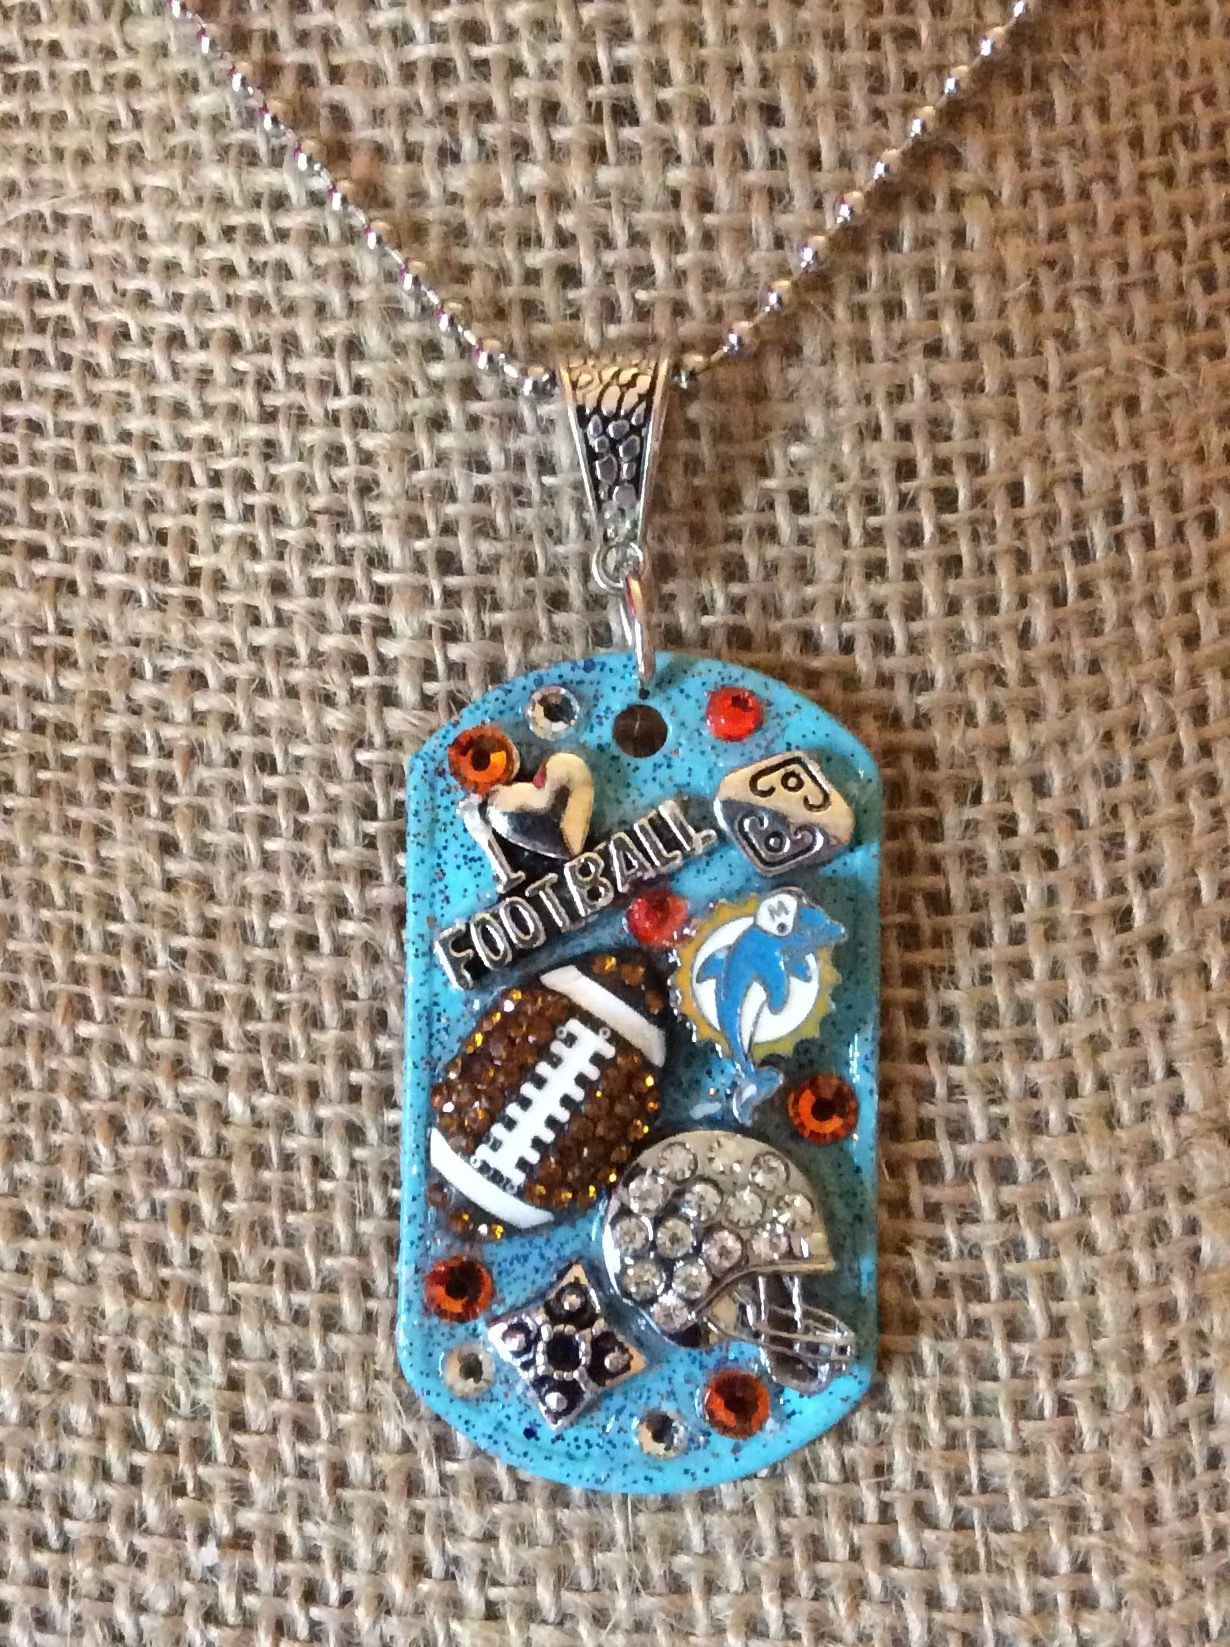 Pin by blessed hands designs on dogtags pinterest dog tags